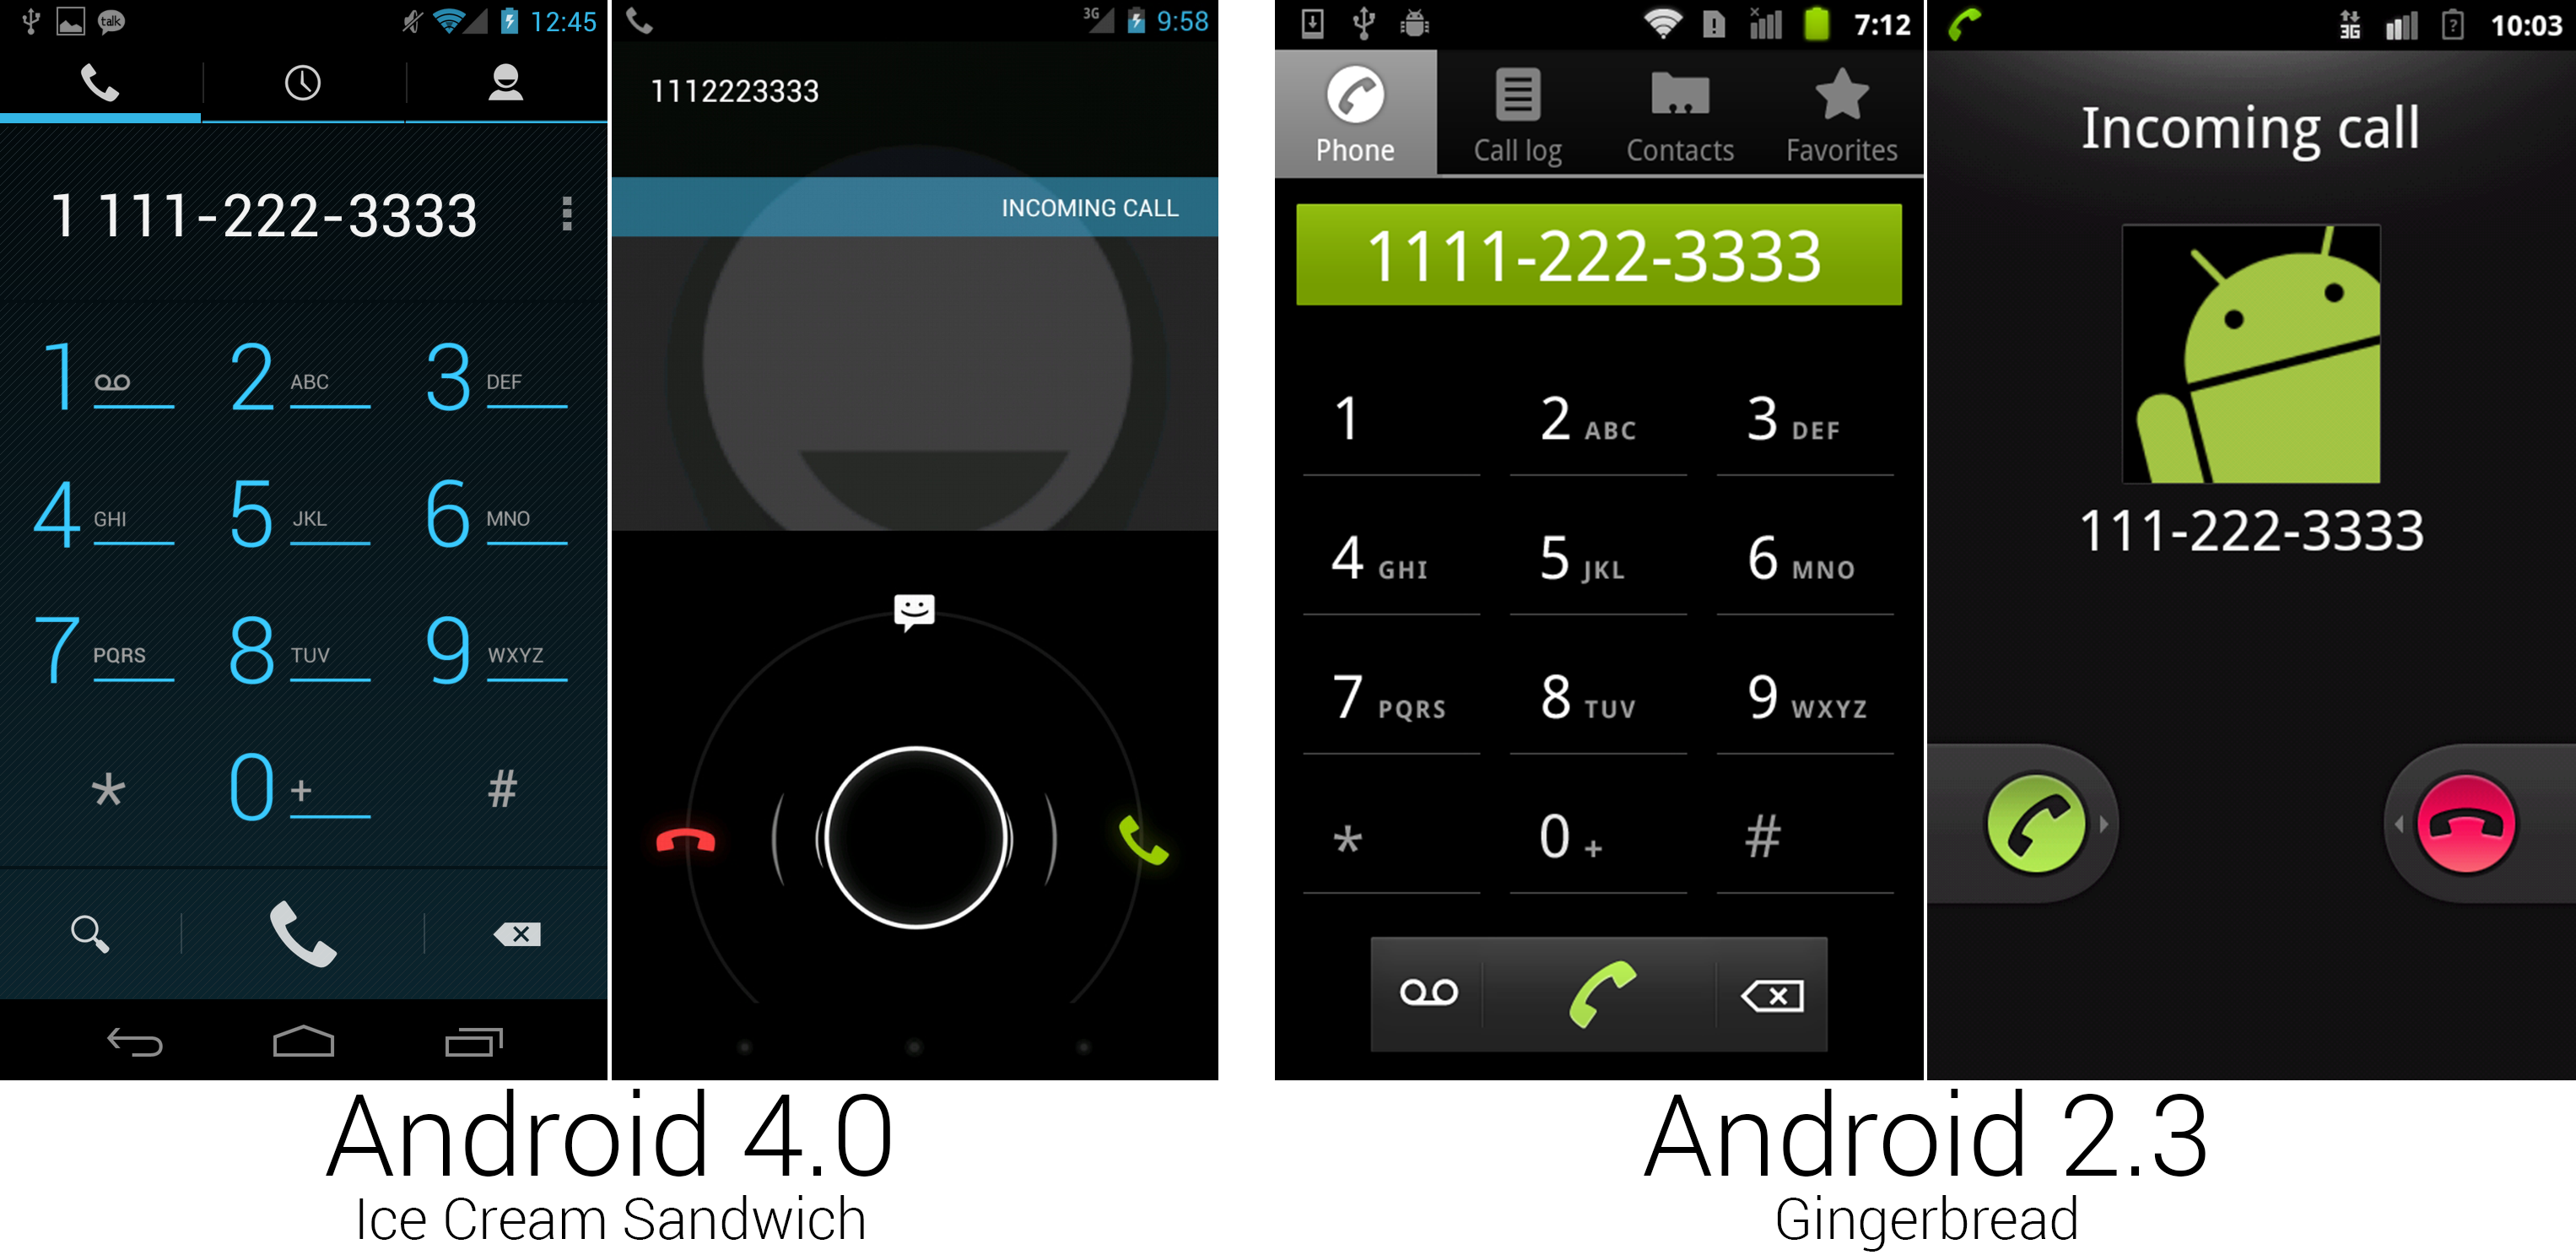 The new dialer and the incoming call screen, both of which we haven't seen since Gingerbread.